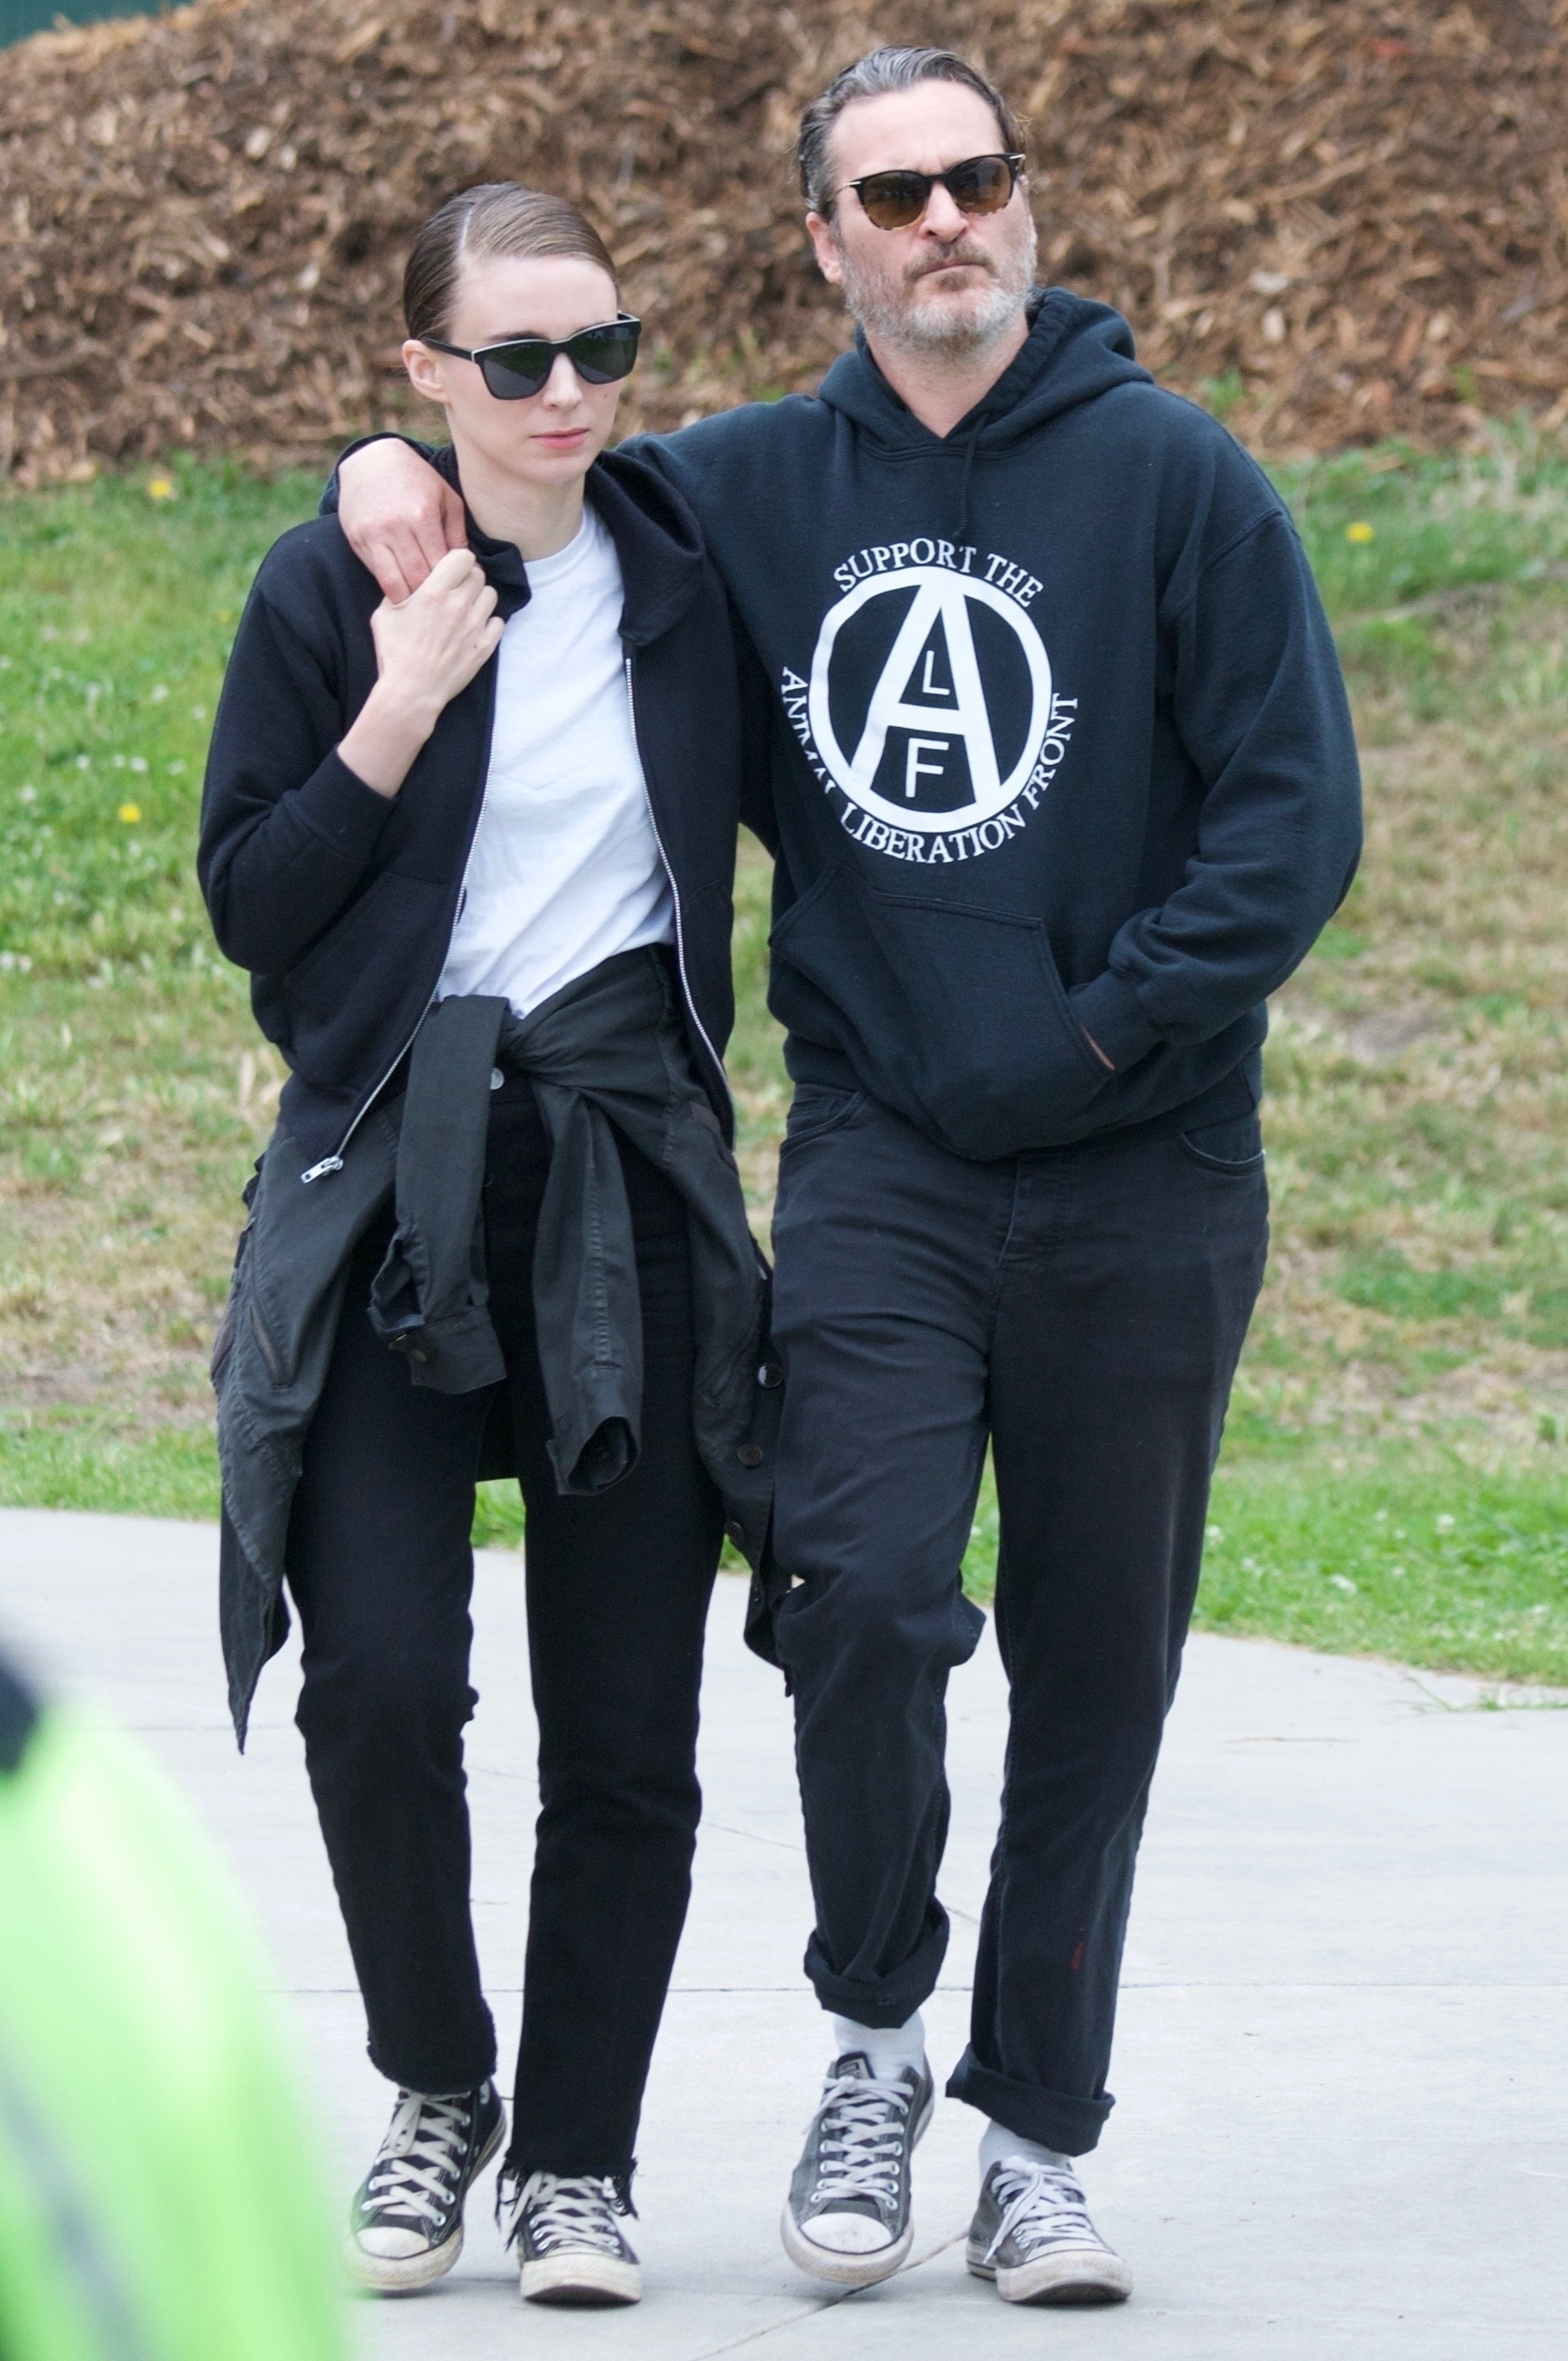 Joaquin Phoenix and Rooney Mara were spotted coupled up while attending the National Animal Rights Day protest in West Hollywood, CA on June 2, 2019.